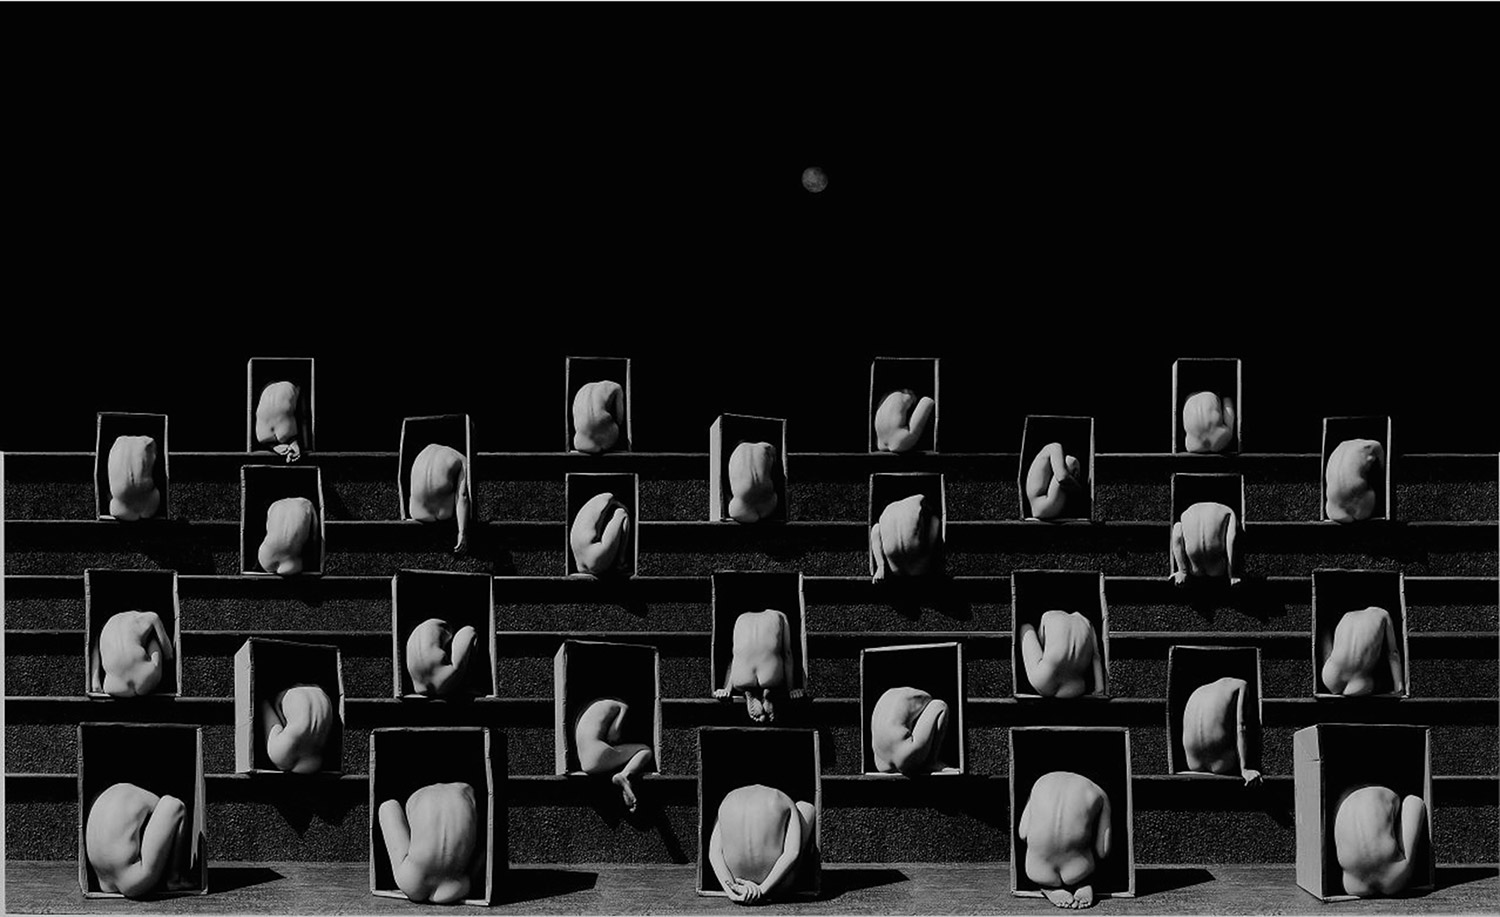 Misha Gordin - crouching figures in box frames on stairs